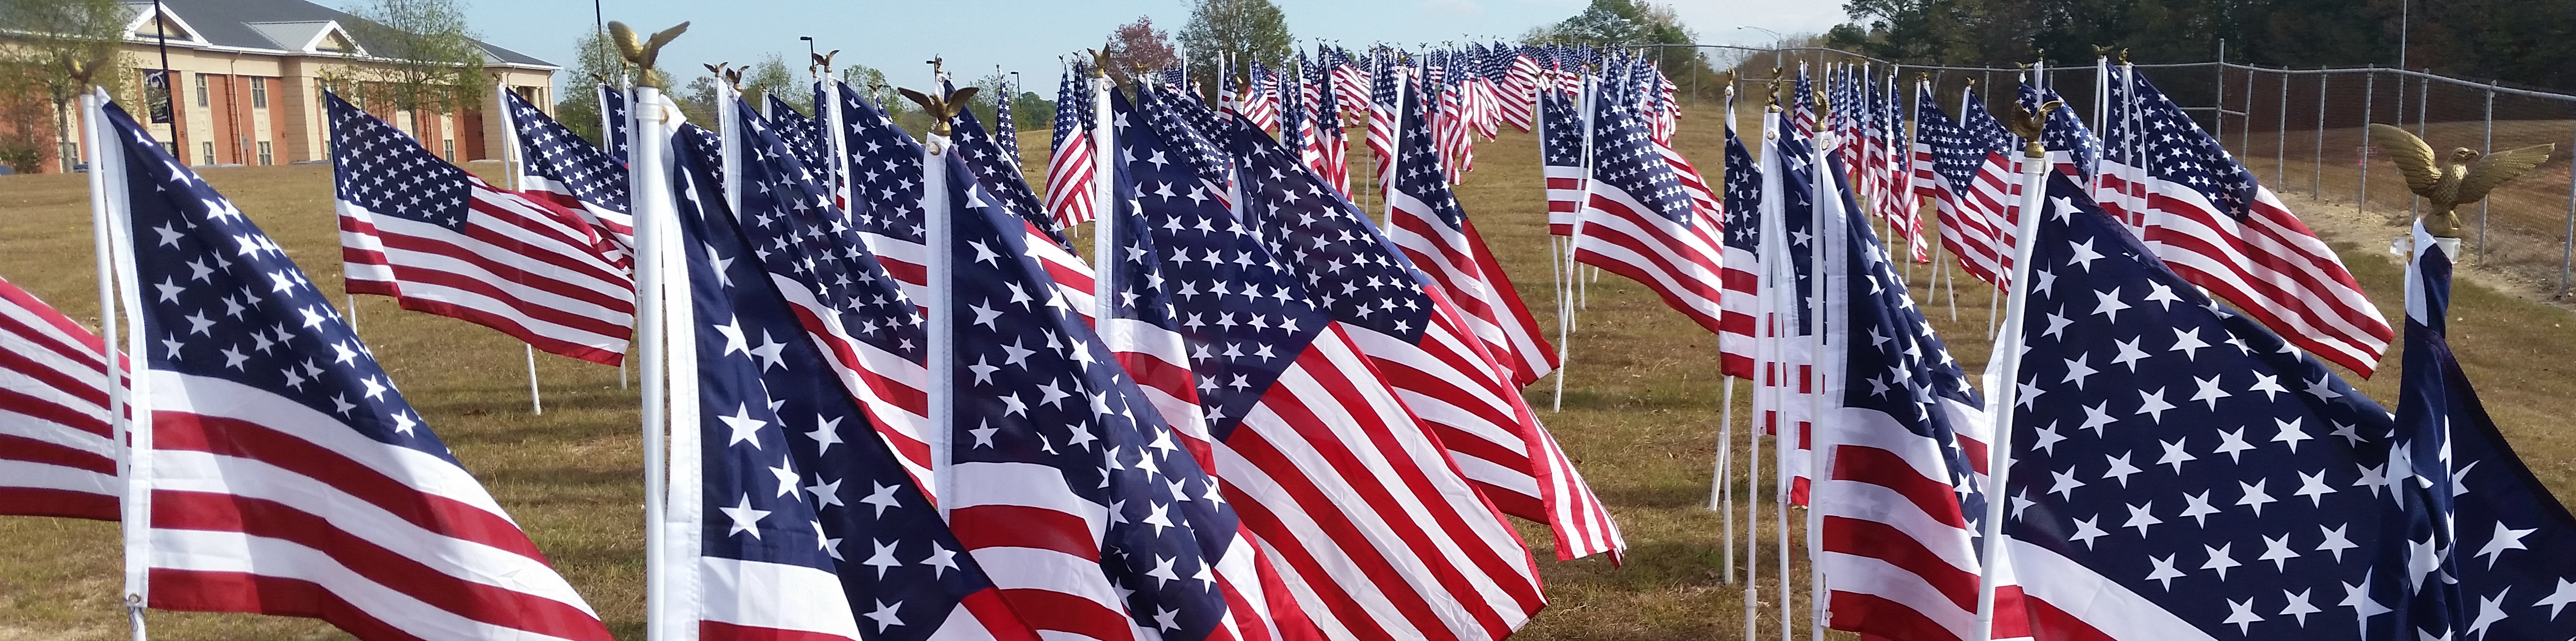 Field of Honor American Flags